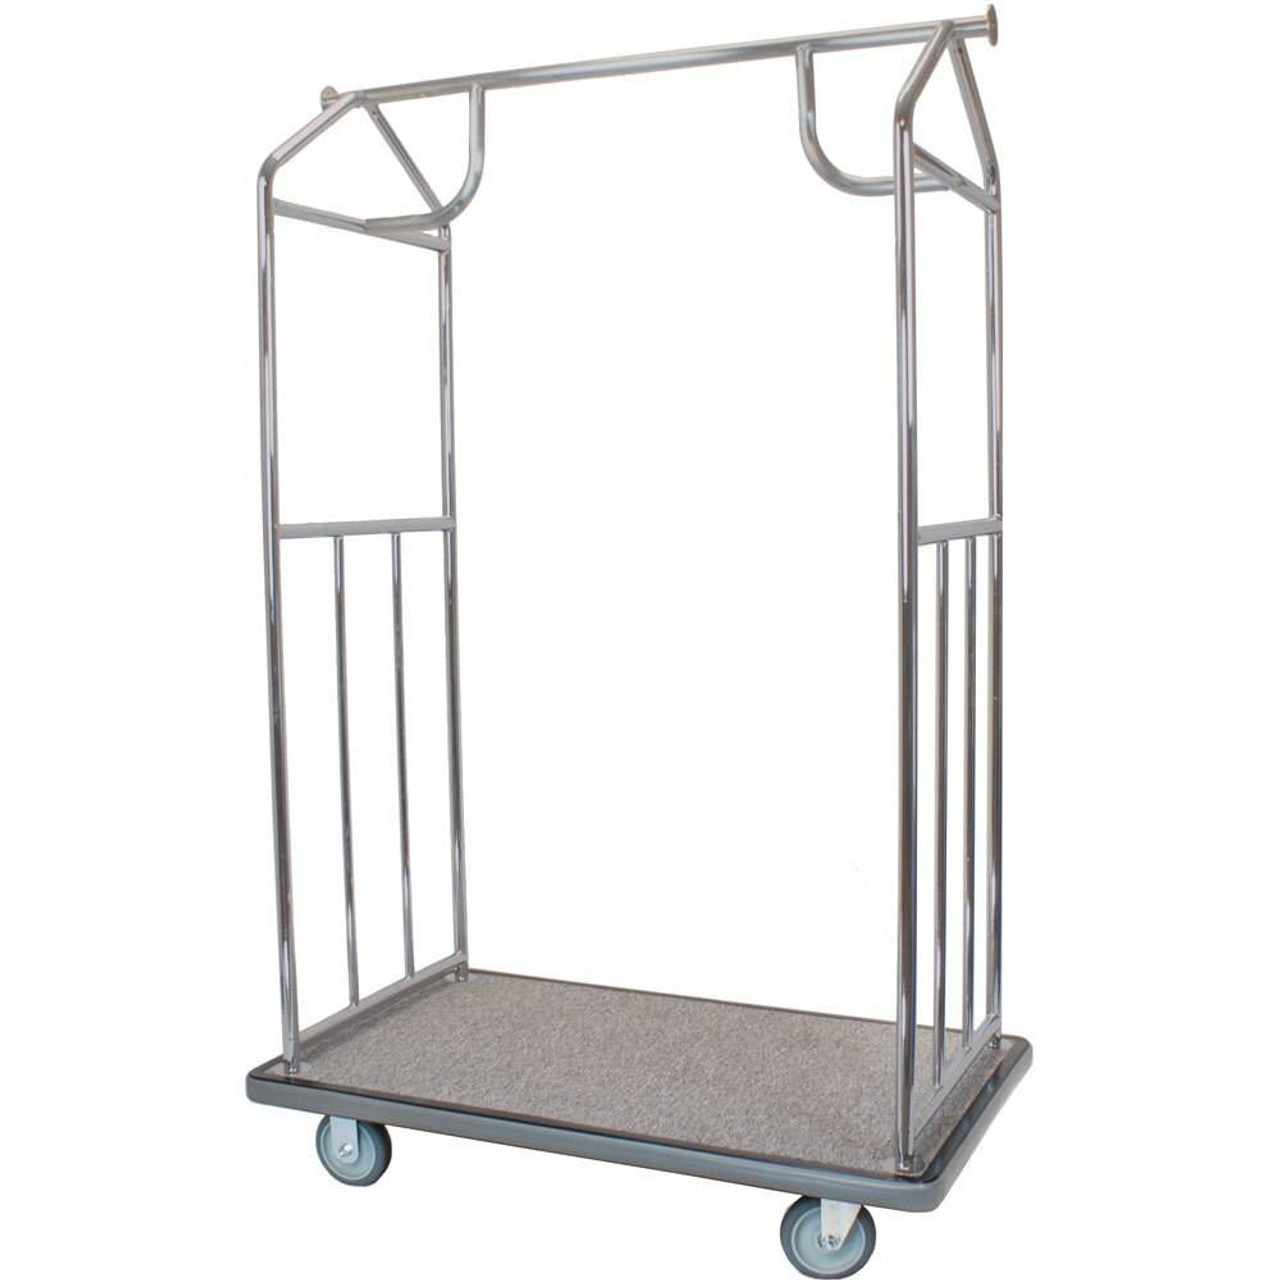 HOSPITALITY 1 SOURCE HOSPITALITY 1 SOURCE or ALL IN ONE BELLMAN CARTS or BRUSHED STAINLESS STEEL